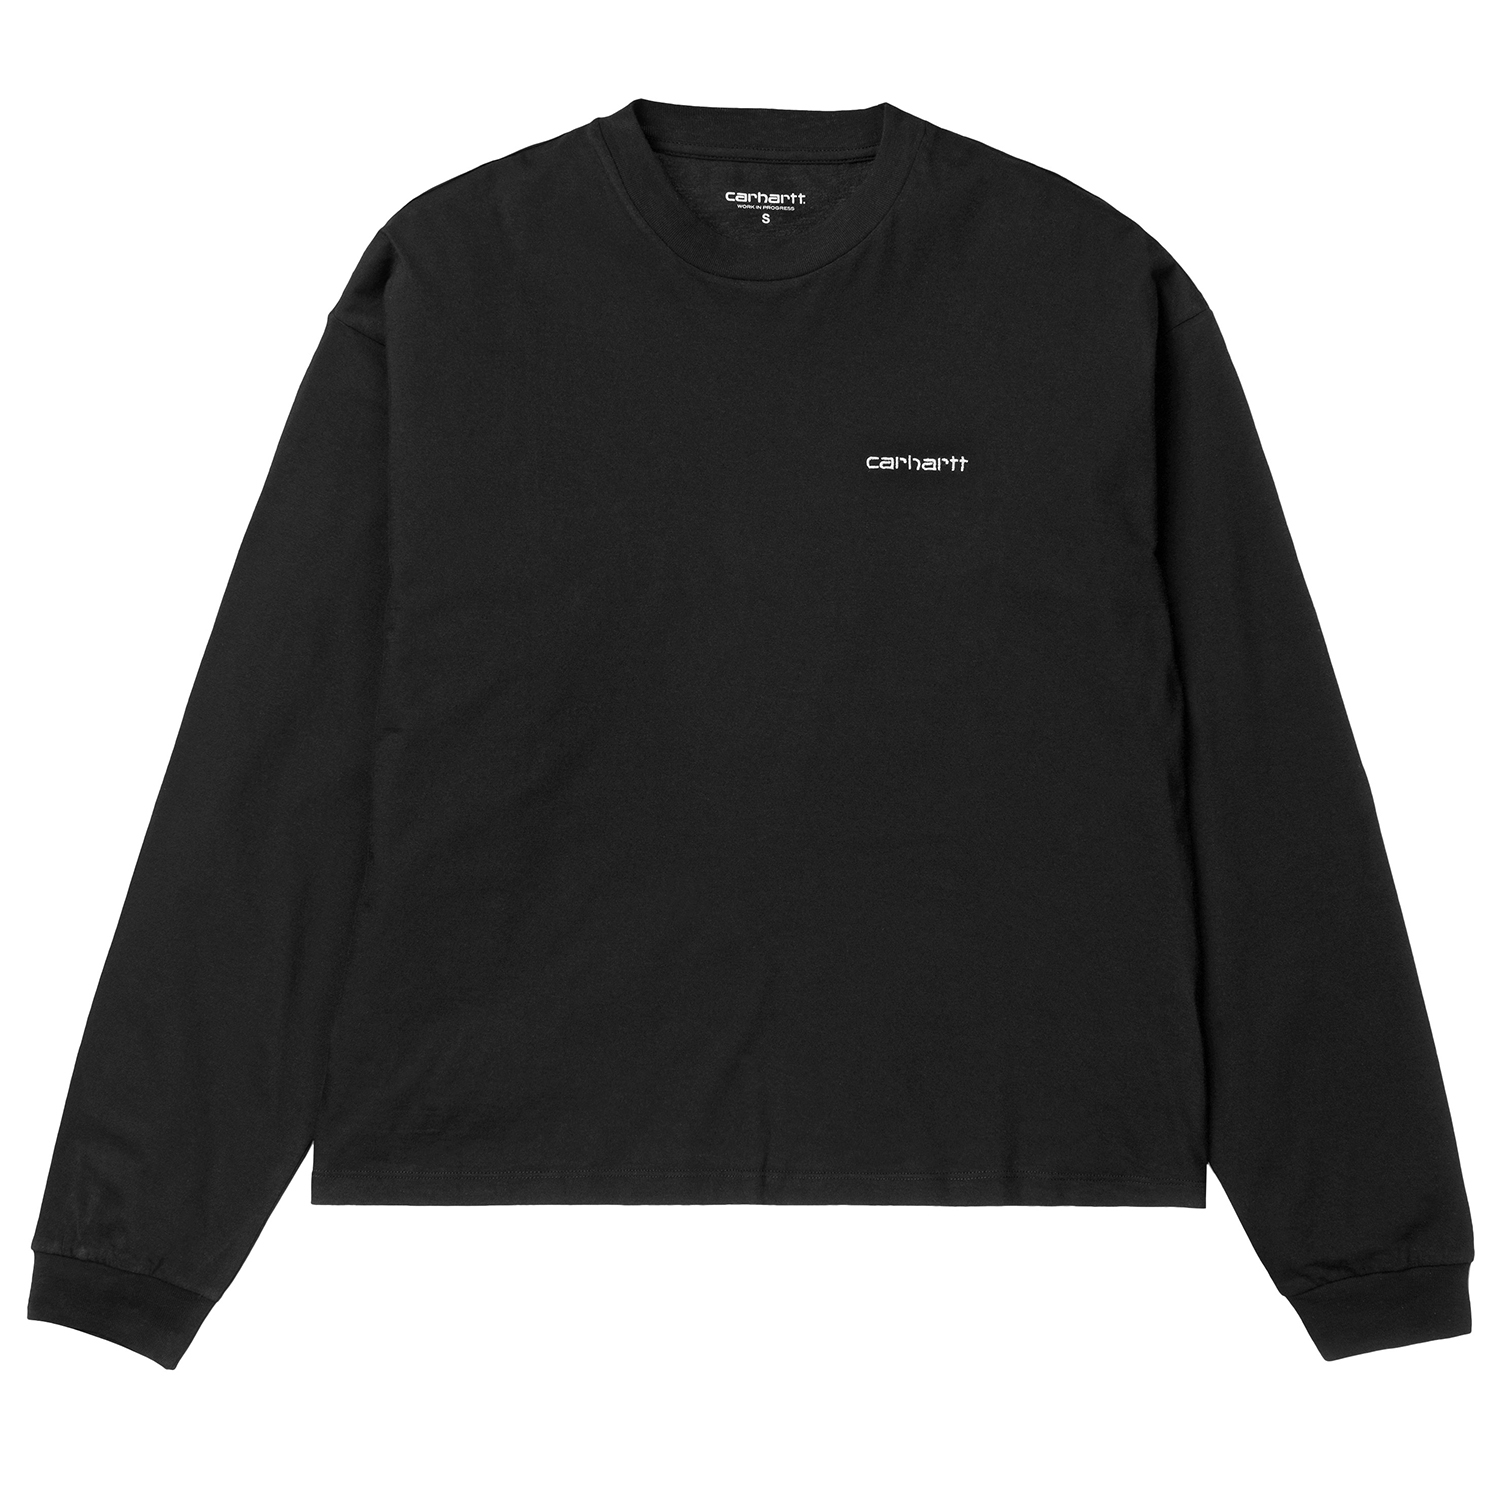 Carhartt Script Embroidery Langærmet t shirt available from